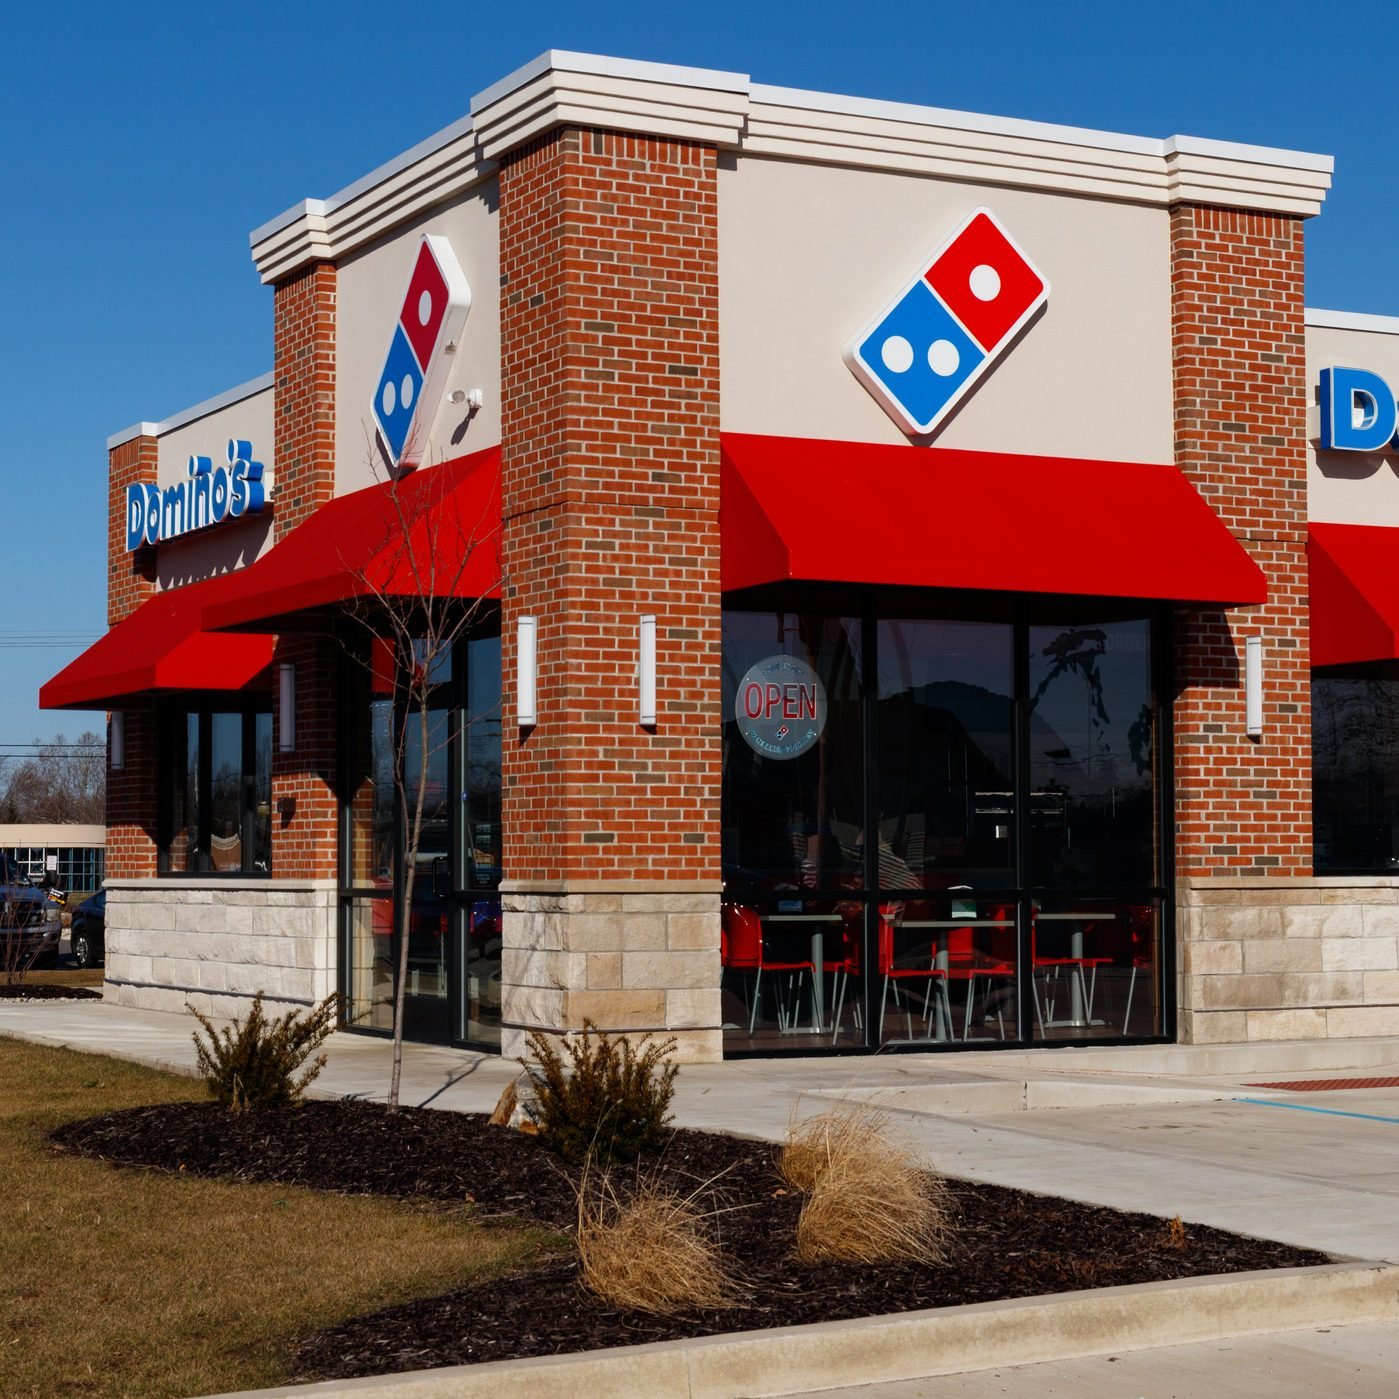 Domino's Pizza Carryout Restaurant. Dominos is consistently one of the top five companies in terms of online transactions II